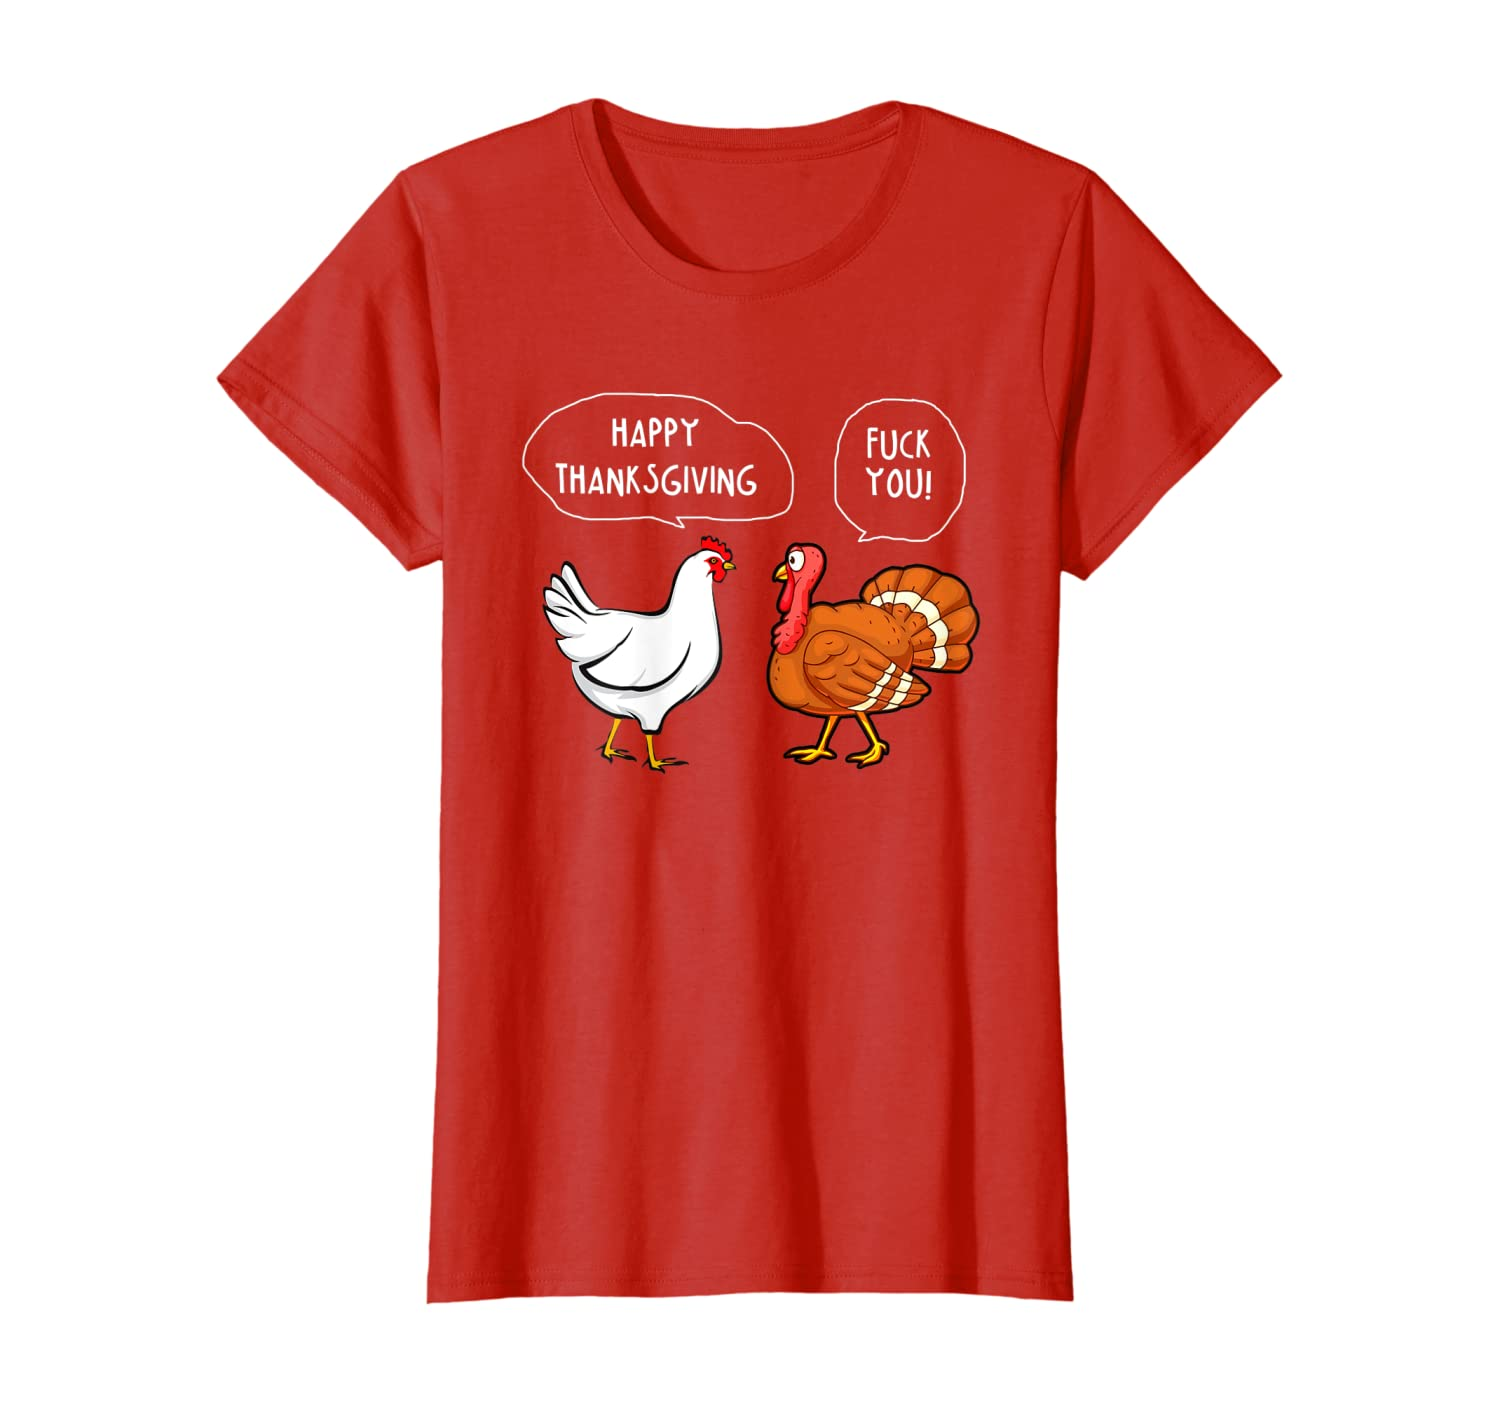 Chicken Vs Turkey Happy Thanksgiving Fuck You Funny Gift T-Shirt Women